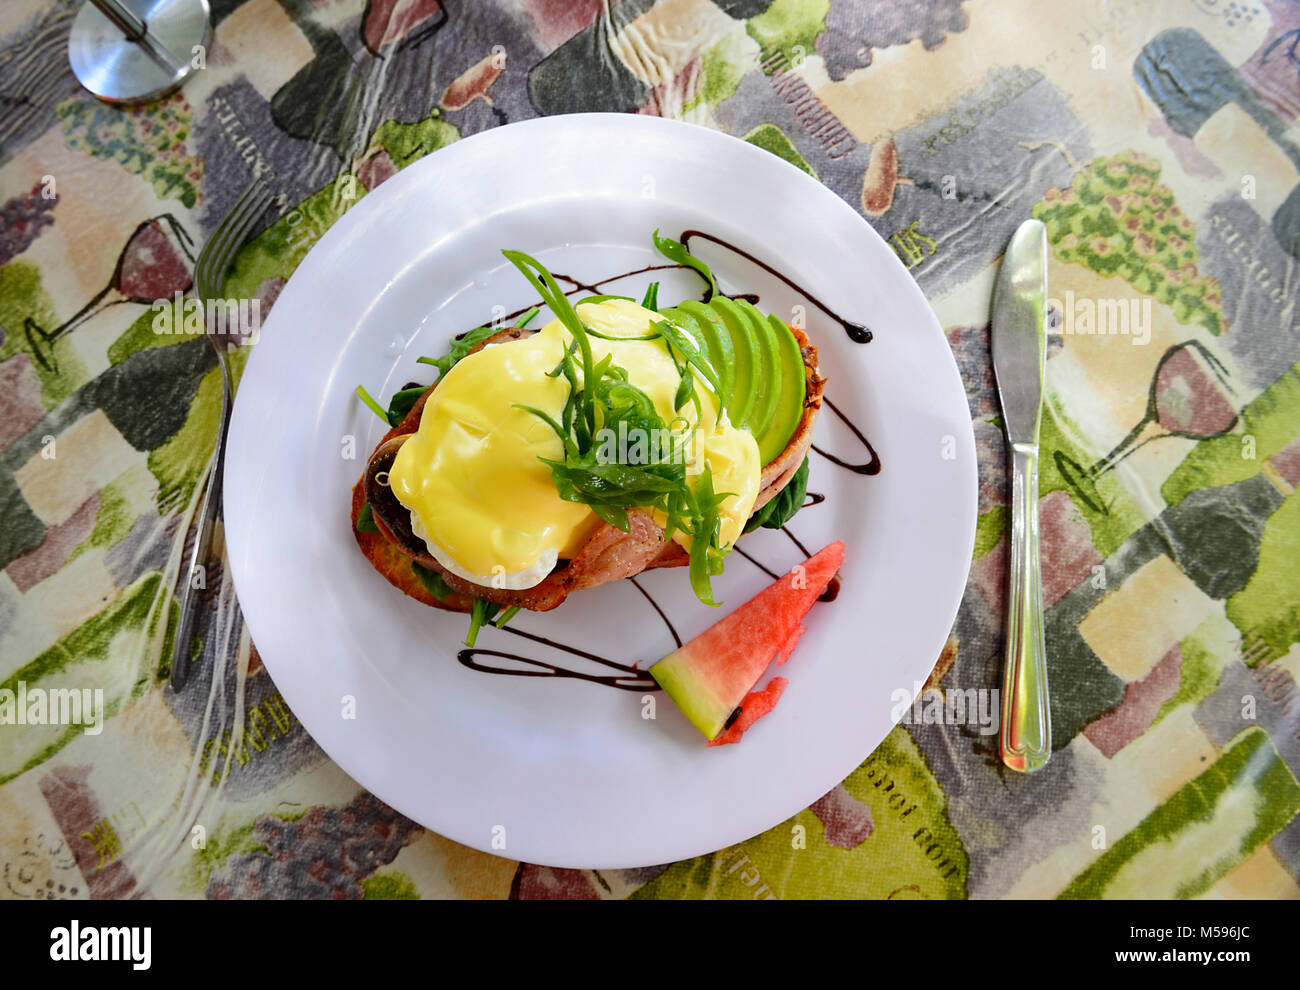 Tasty classic dish of eggs Benedict on a white plate, nicely presented - Stock Image